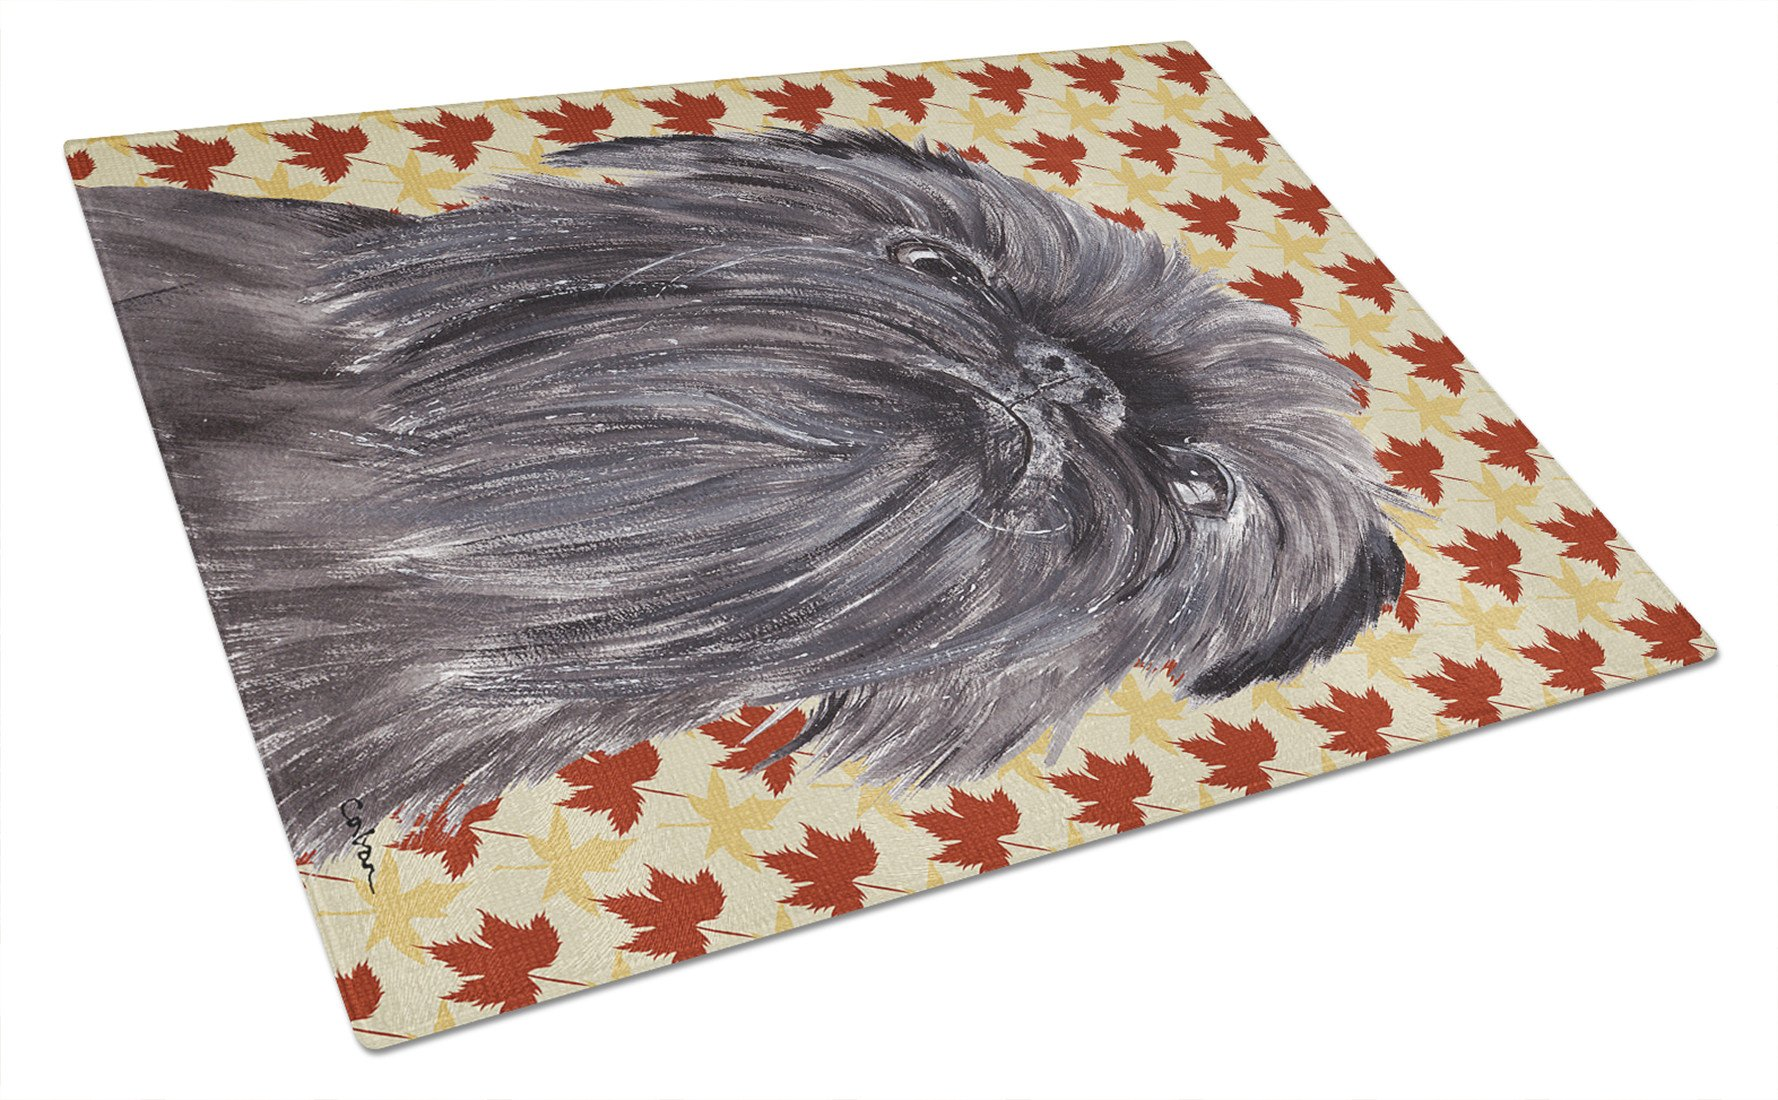 Brussels Griffon Fall Leaves Glass Cutting Board Large by Caroline's Treasures